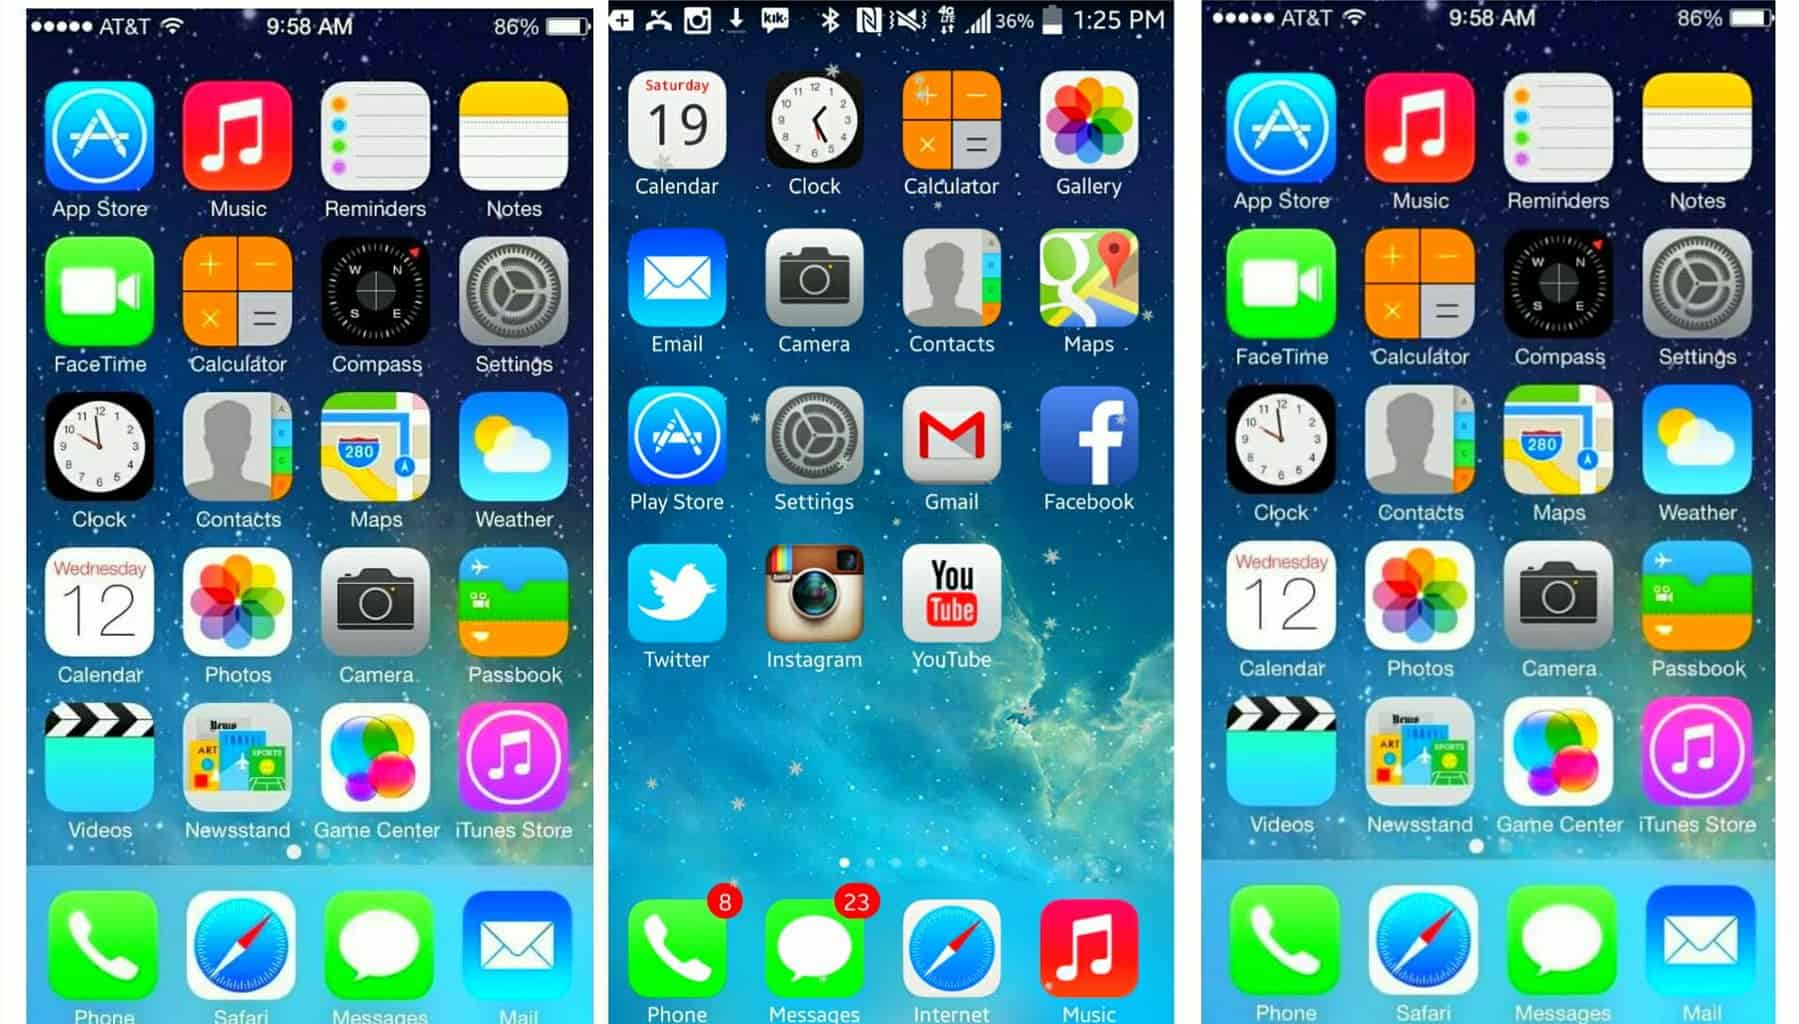 iPhone Launcher to Make Android Looks like iPhone X